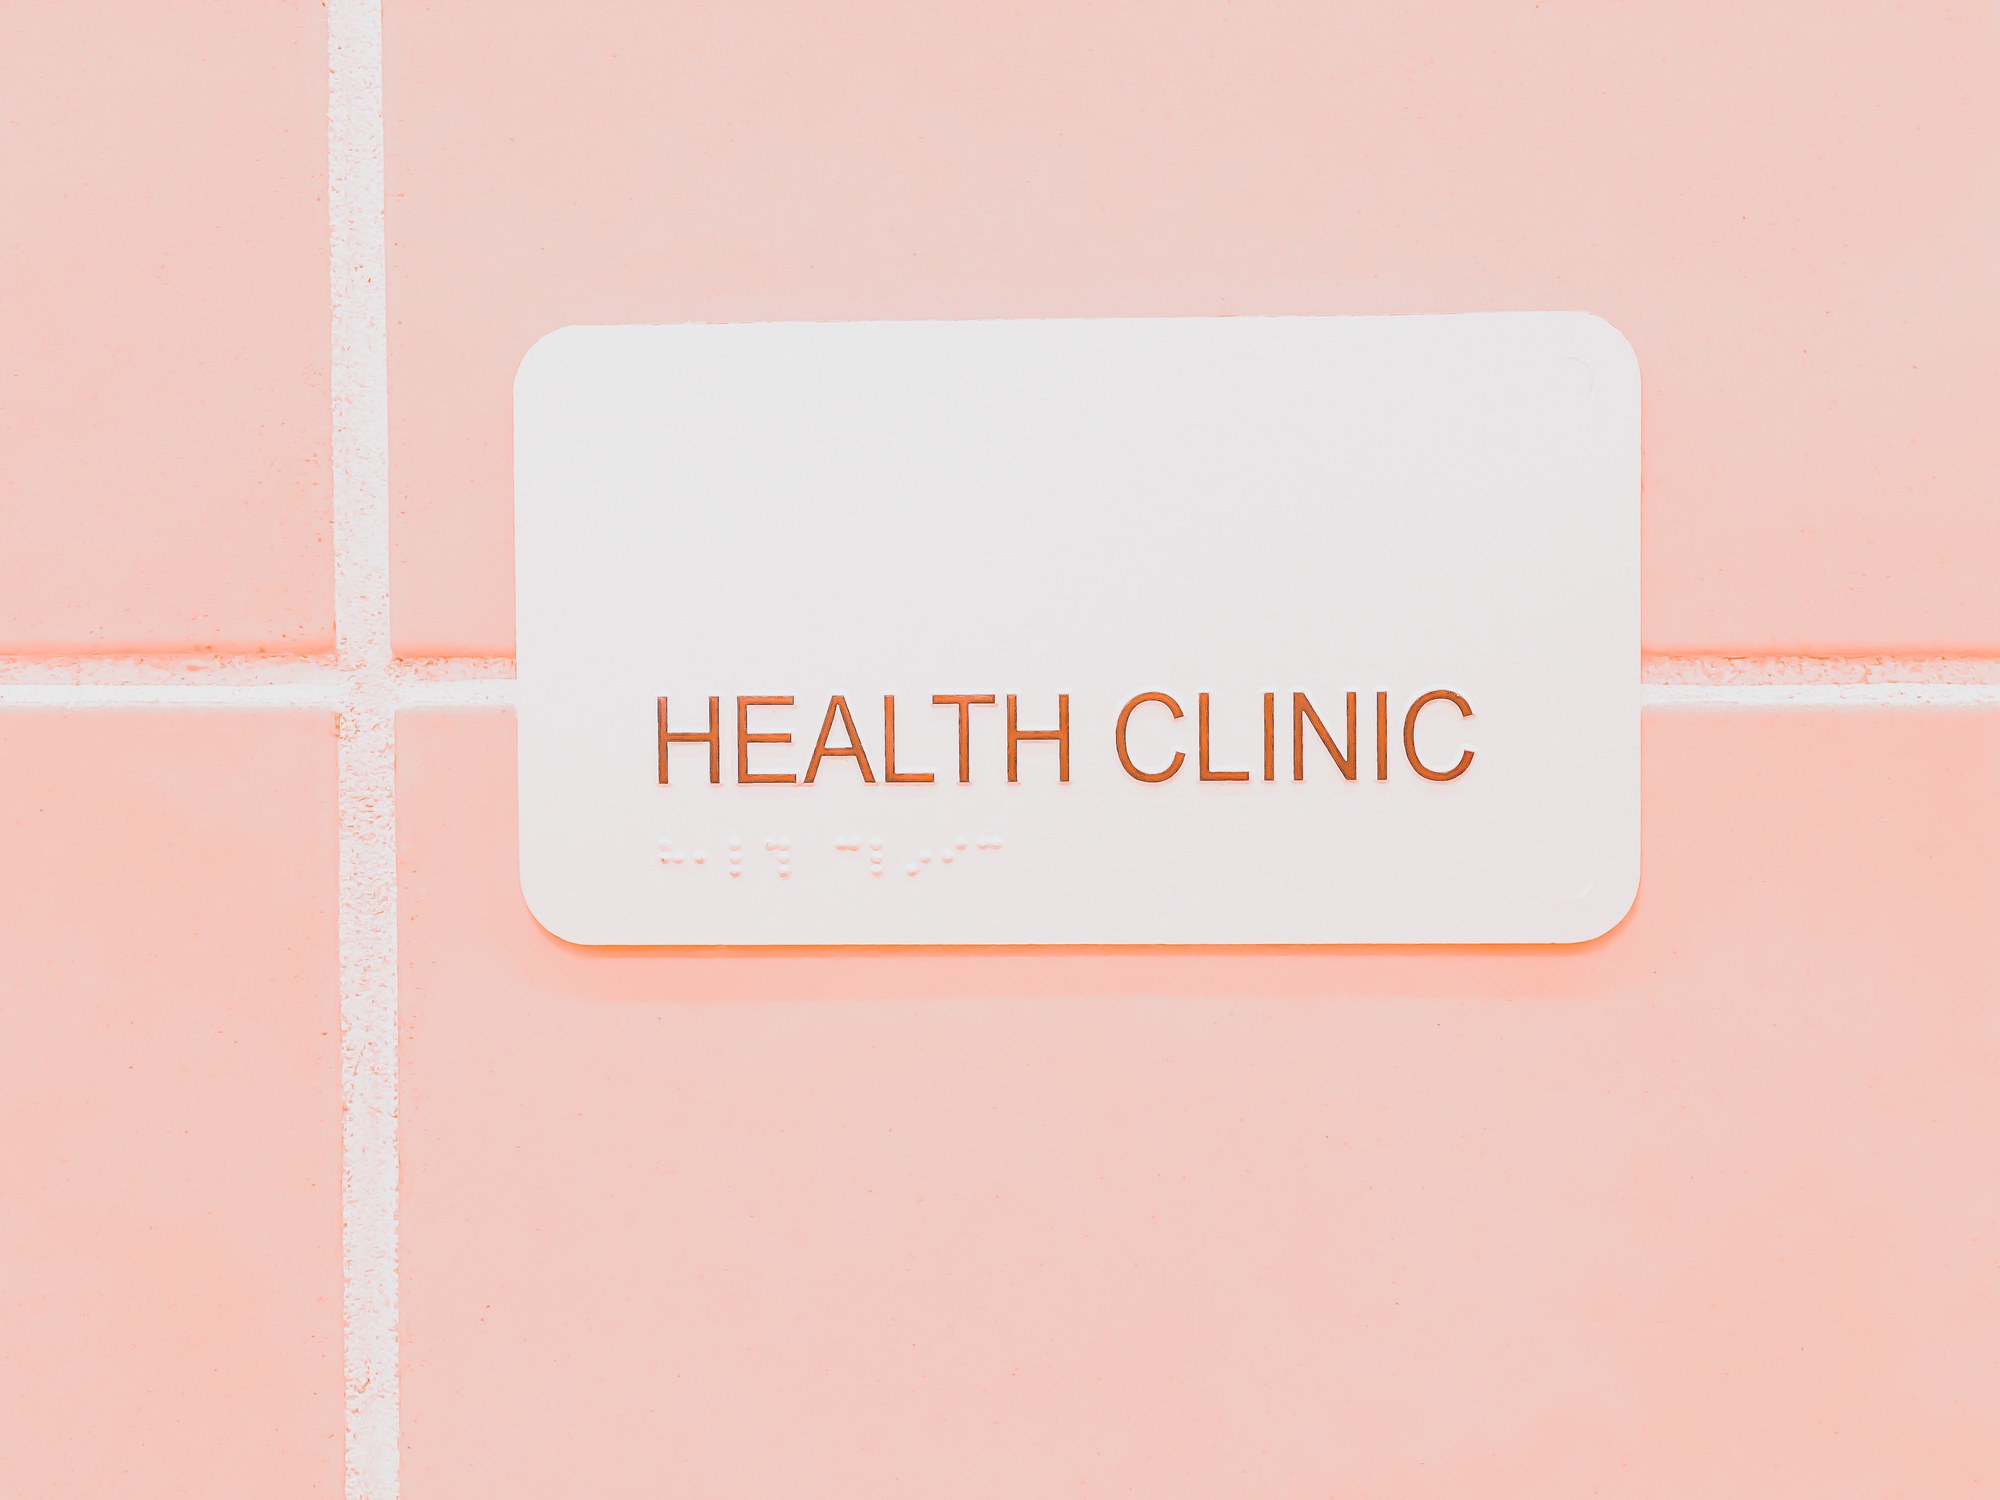 Stock image of a health clinic.